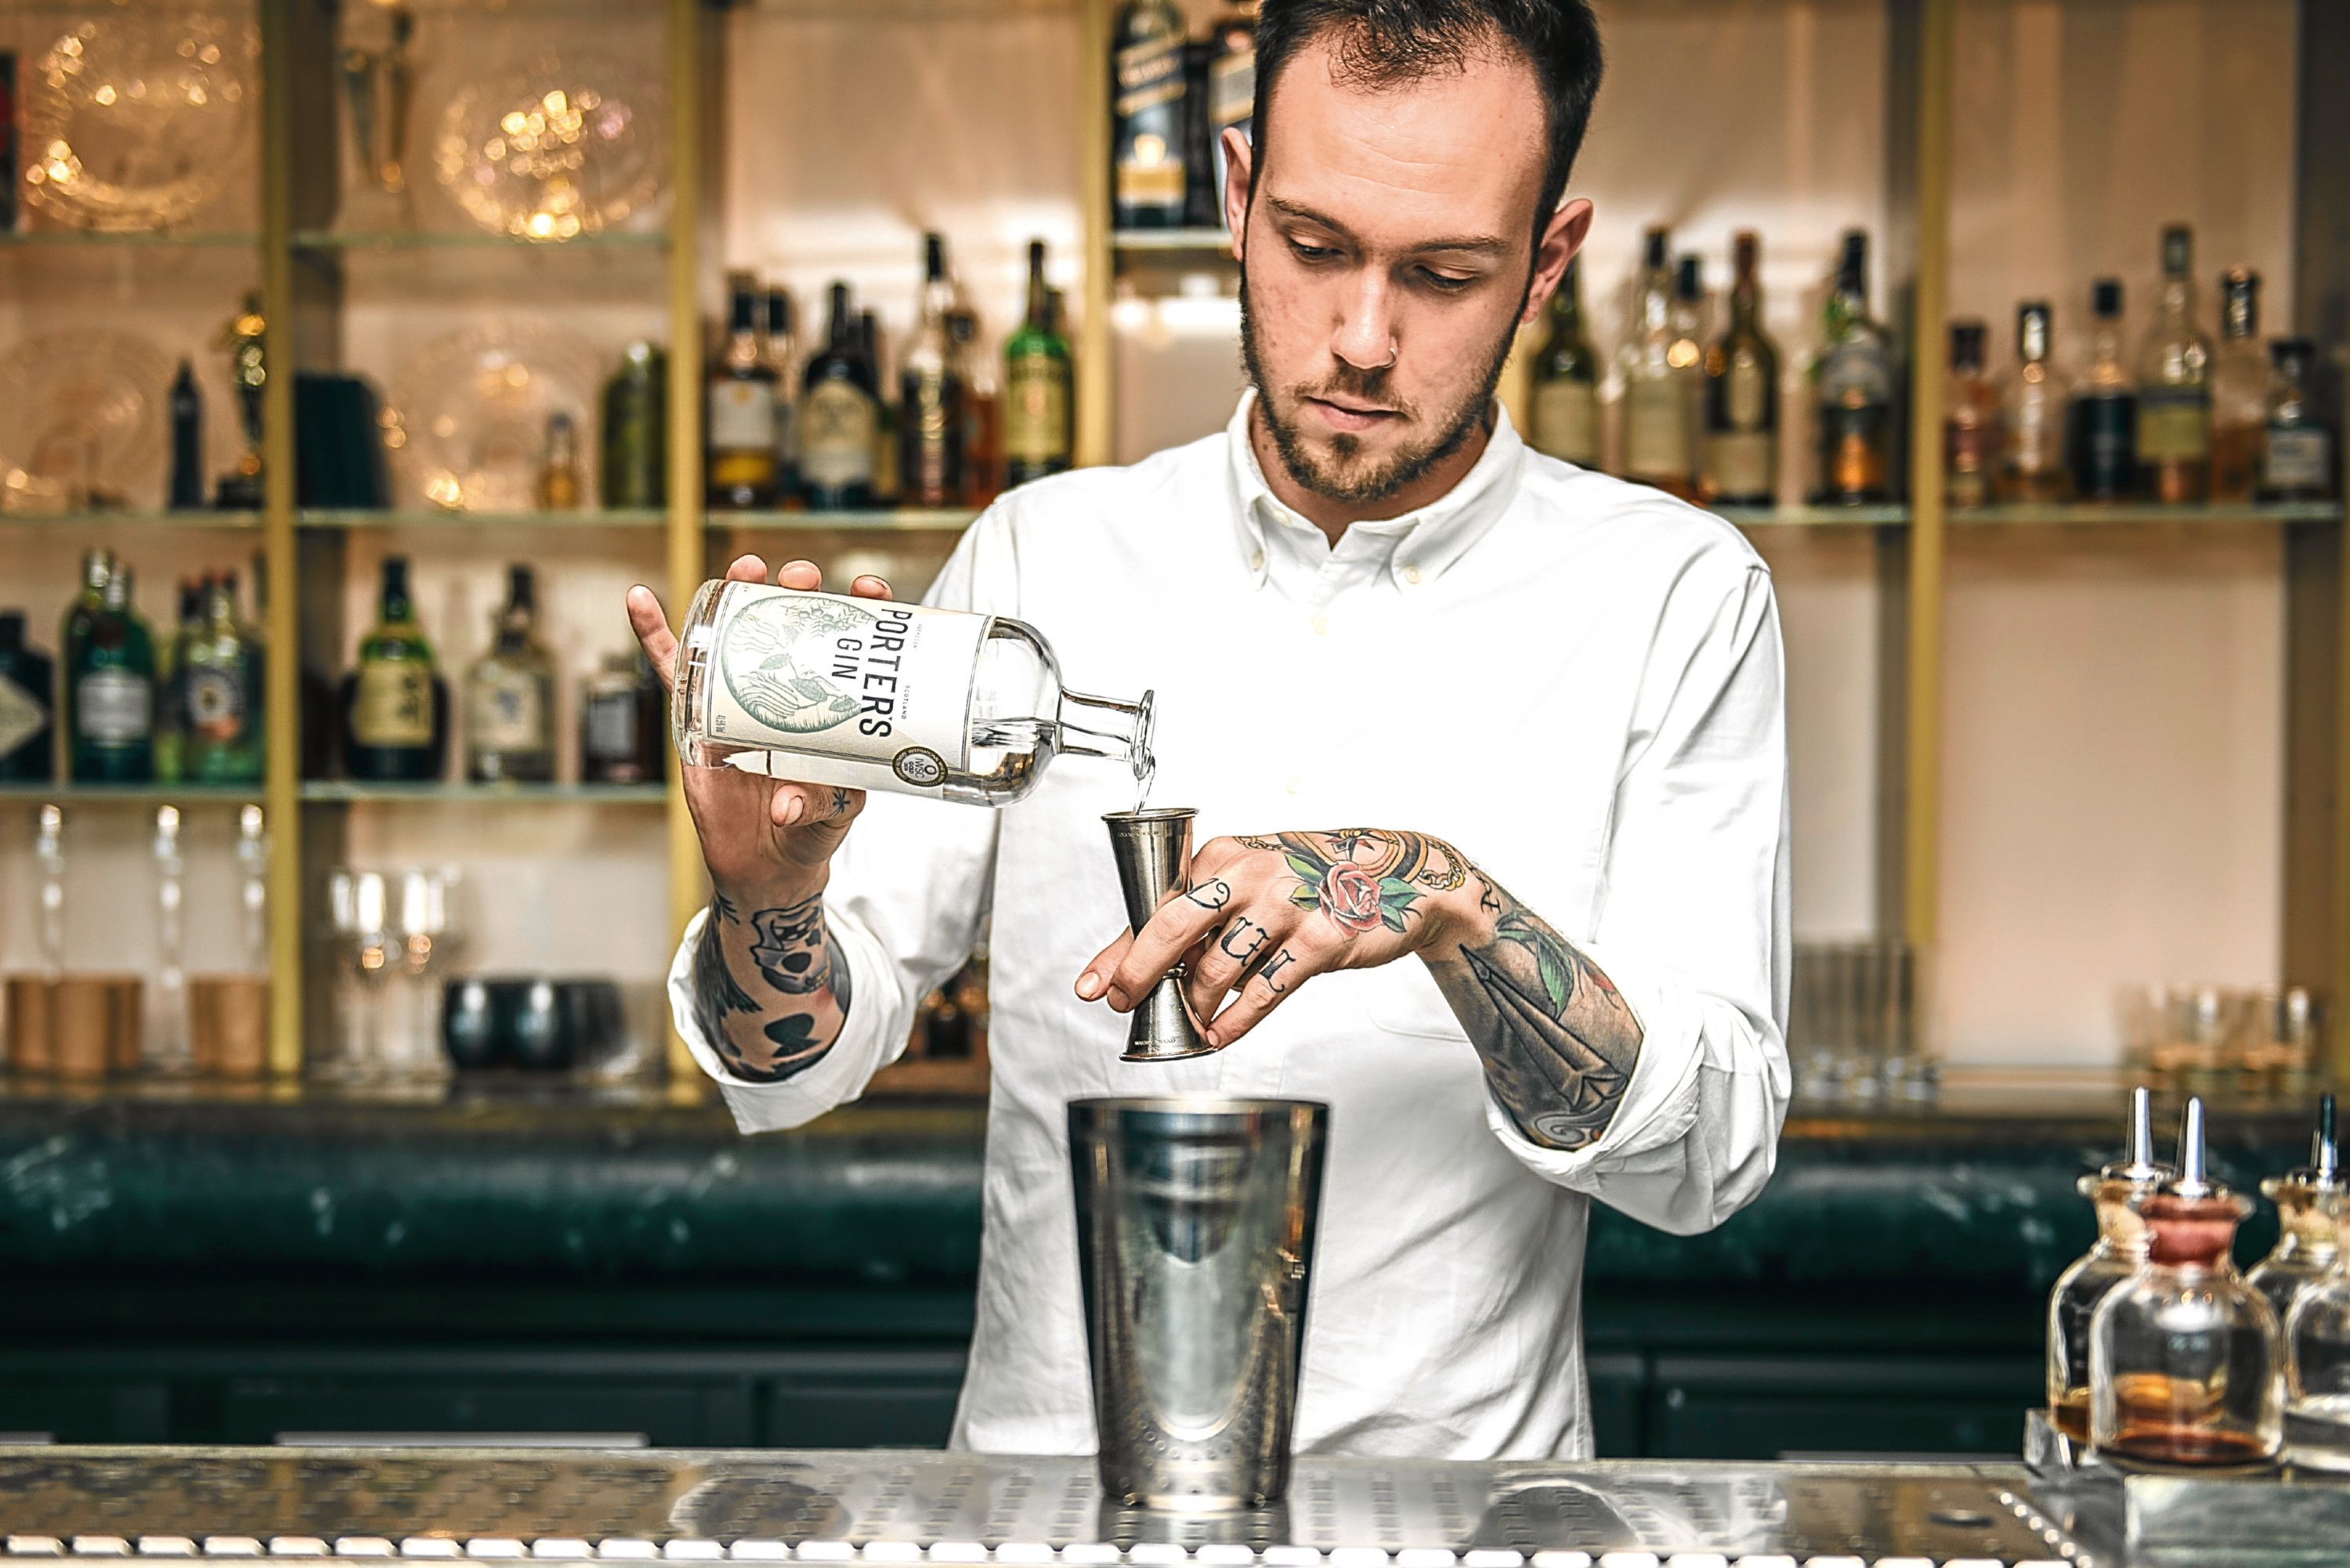 Alex Lawrence, who was named bartender of the year at the CLASS bar awards 2018